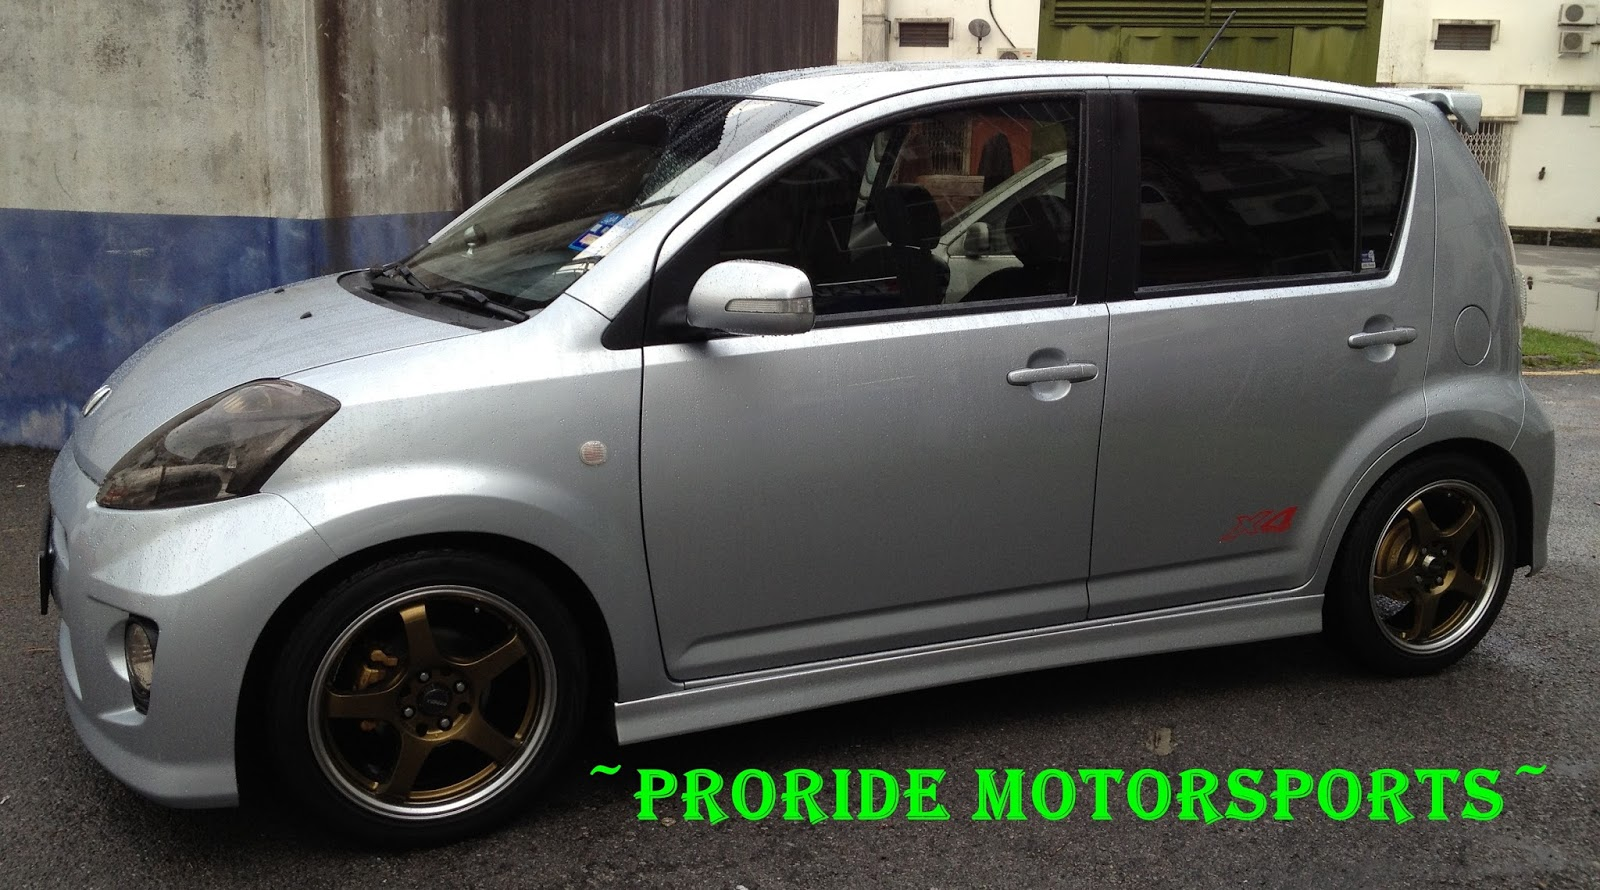 Pro-ride Motorsports: Perodua Myvi installed with KYB RS